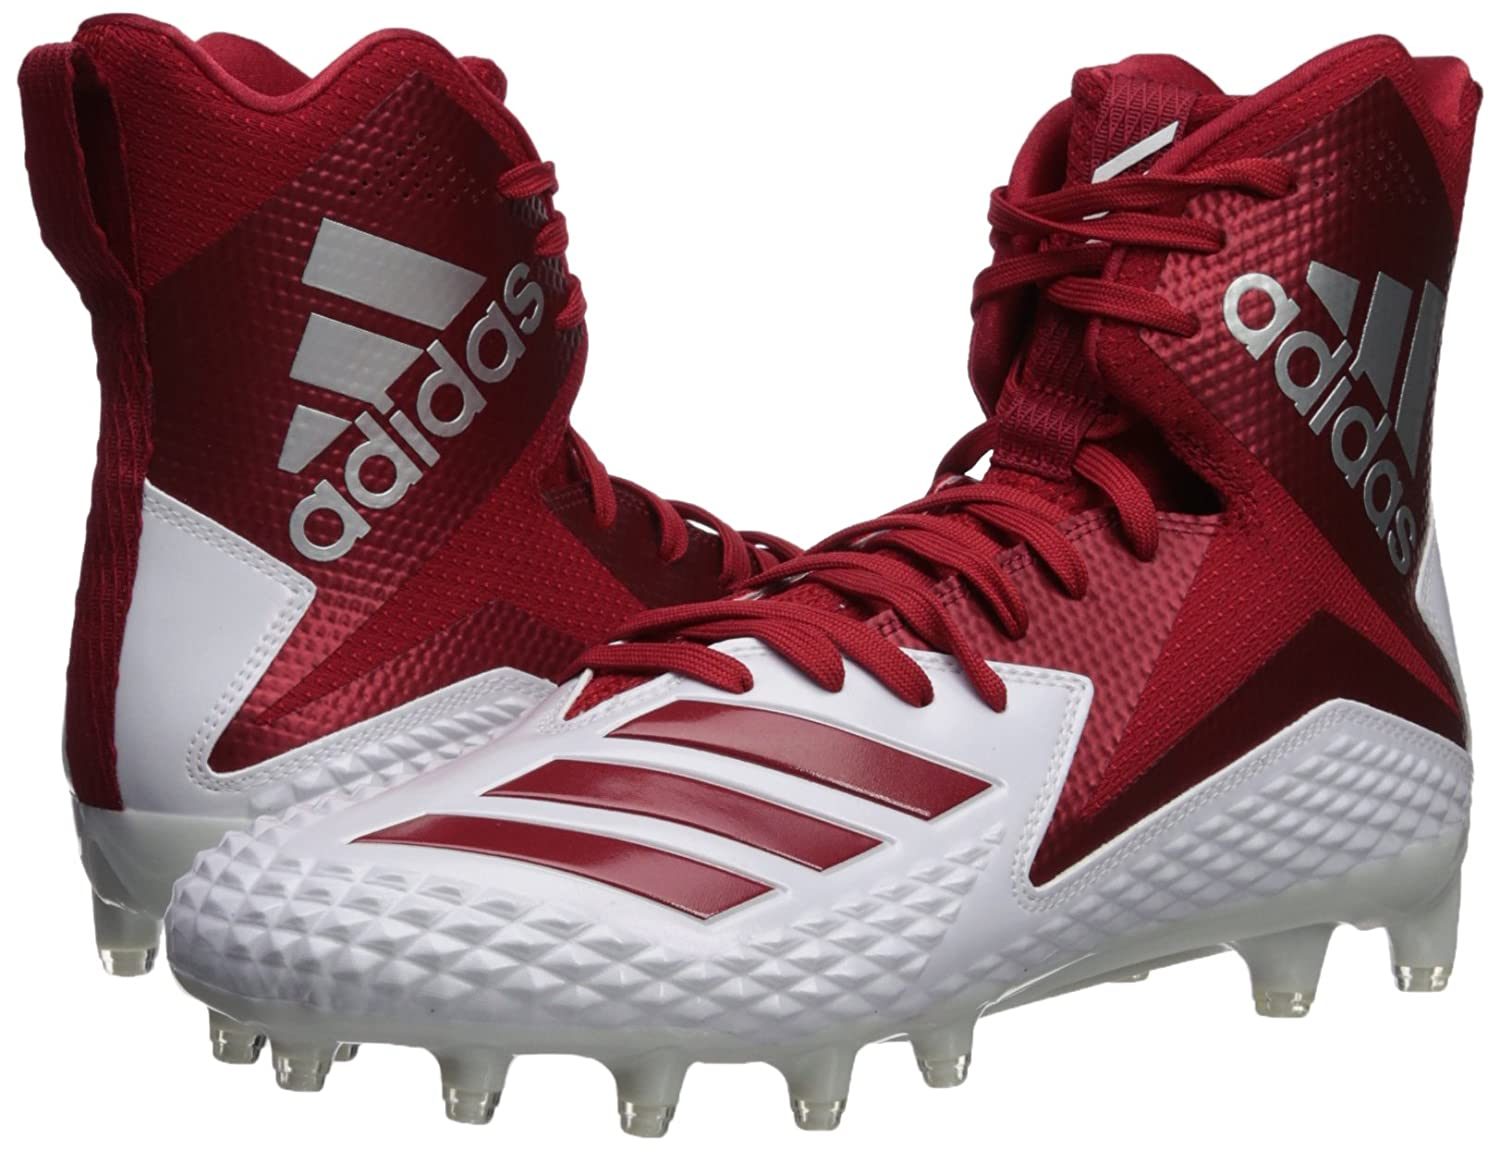 Adidas Herren High Freak Freak Freak X Carbon Mid Football-Schuhe B072FGYB6M  1a6130